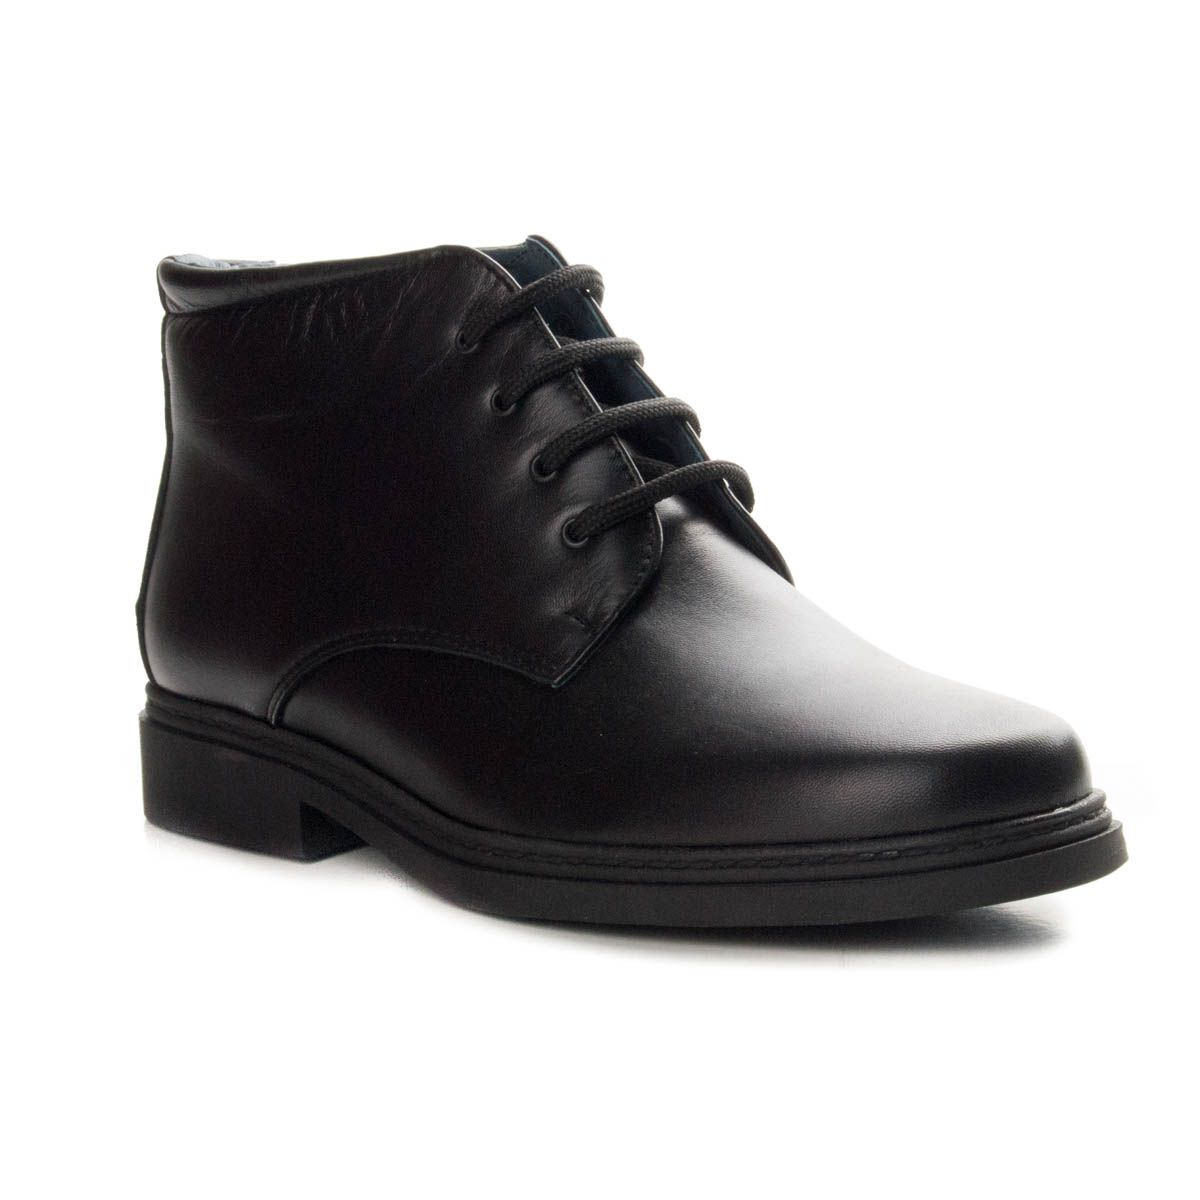 Purapiel Lace Up Ankle Boot in Black